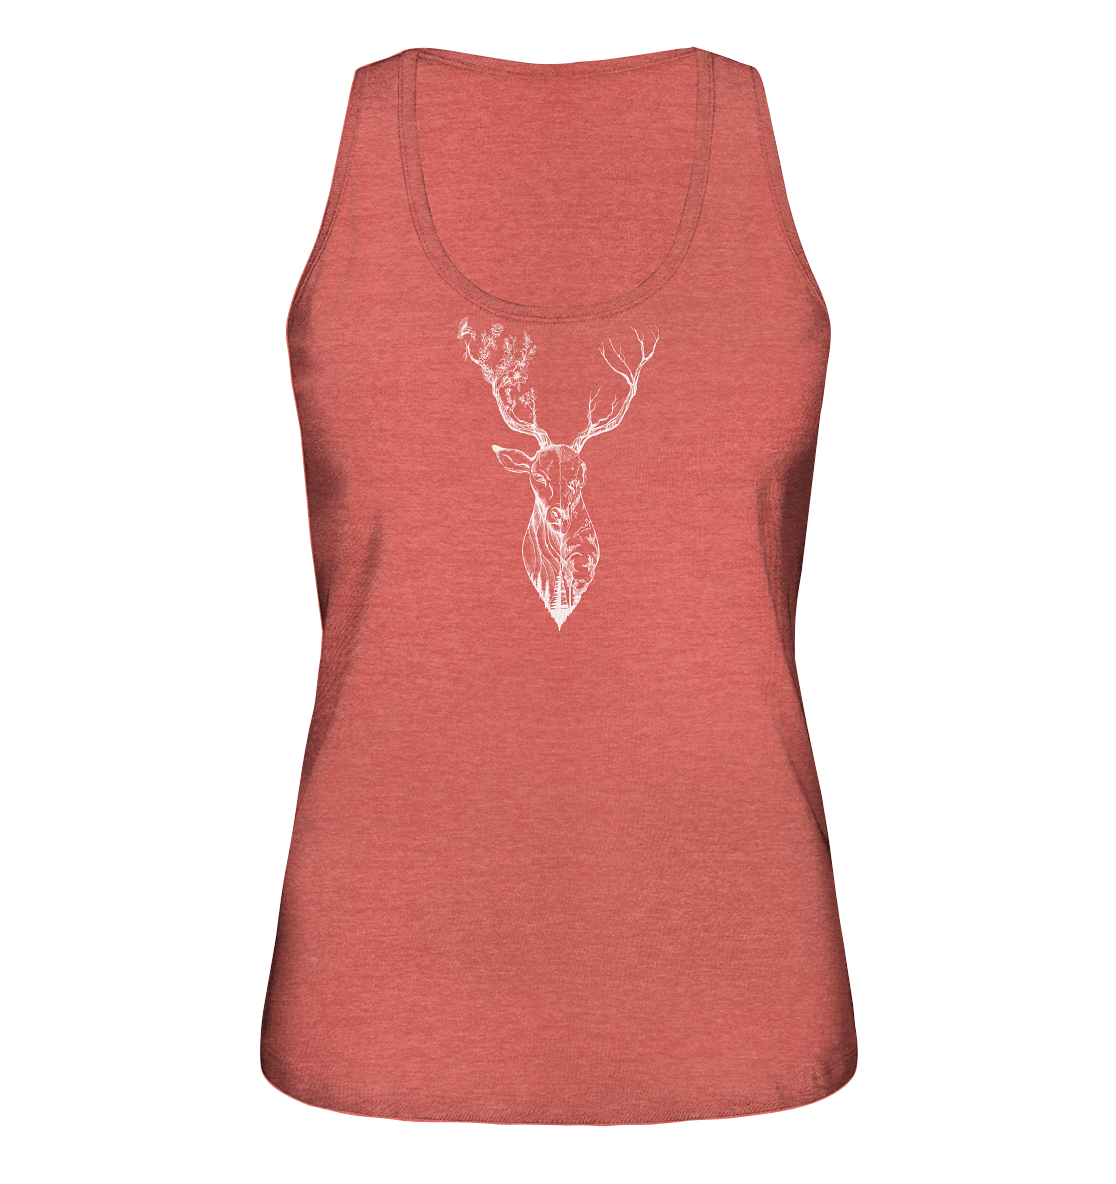 front-ladies-organic-tank-top-e05651-1116x-10.png